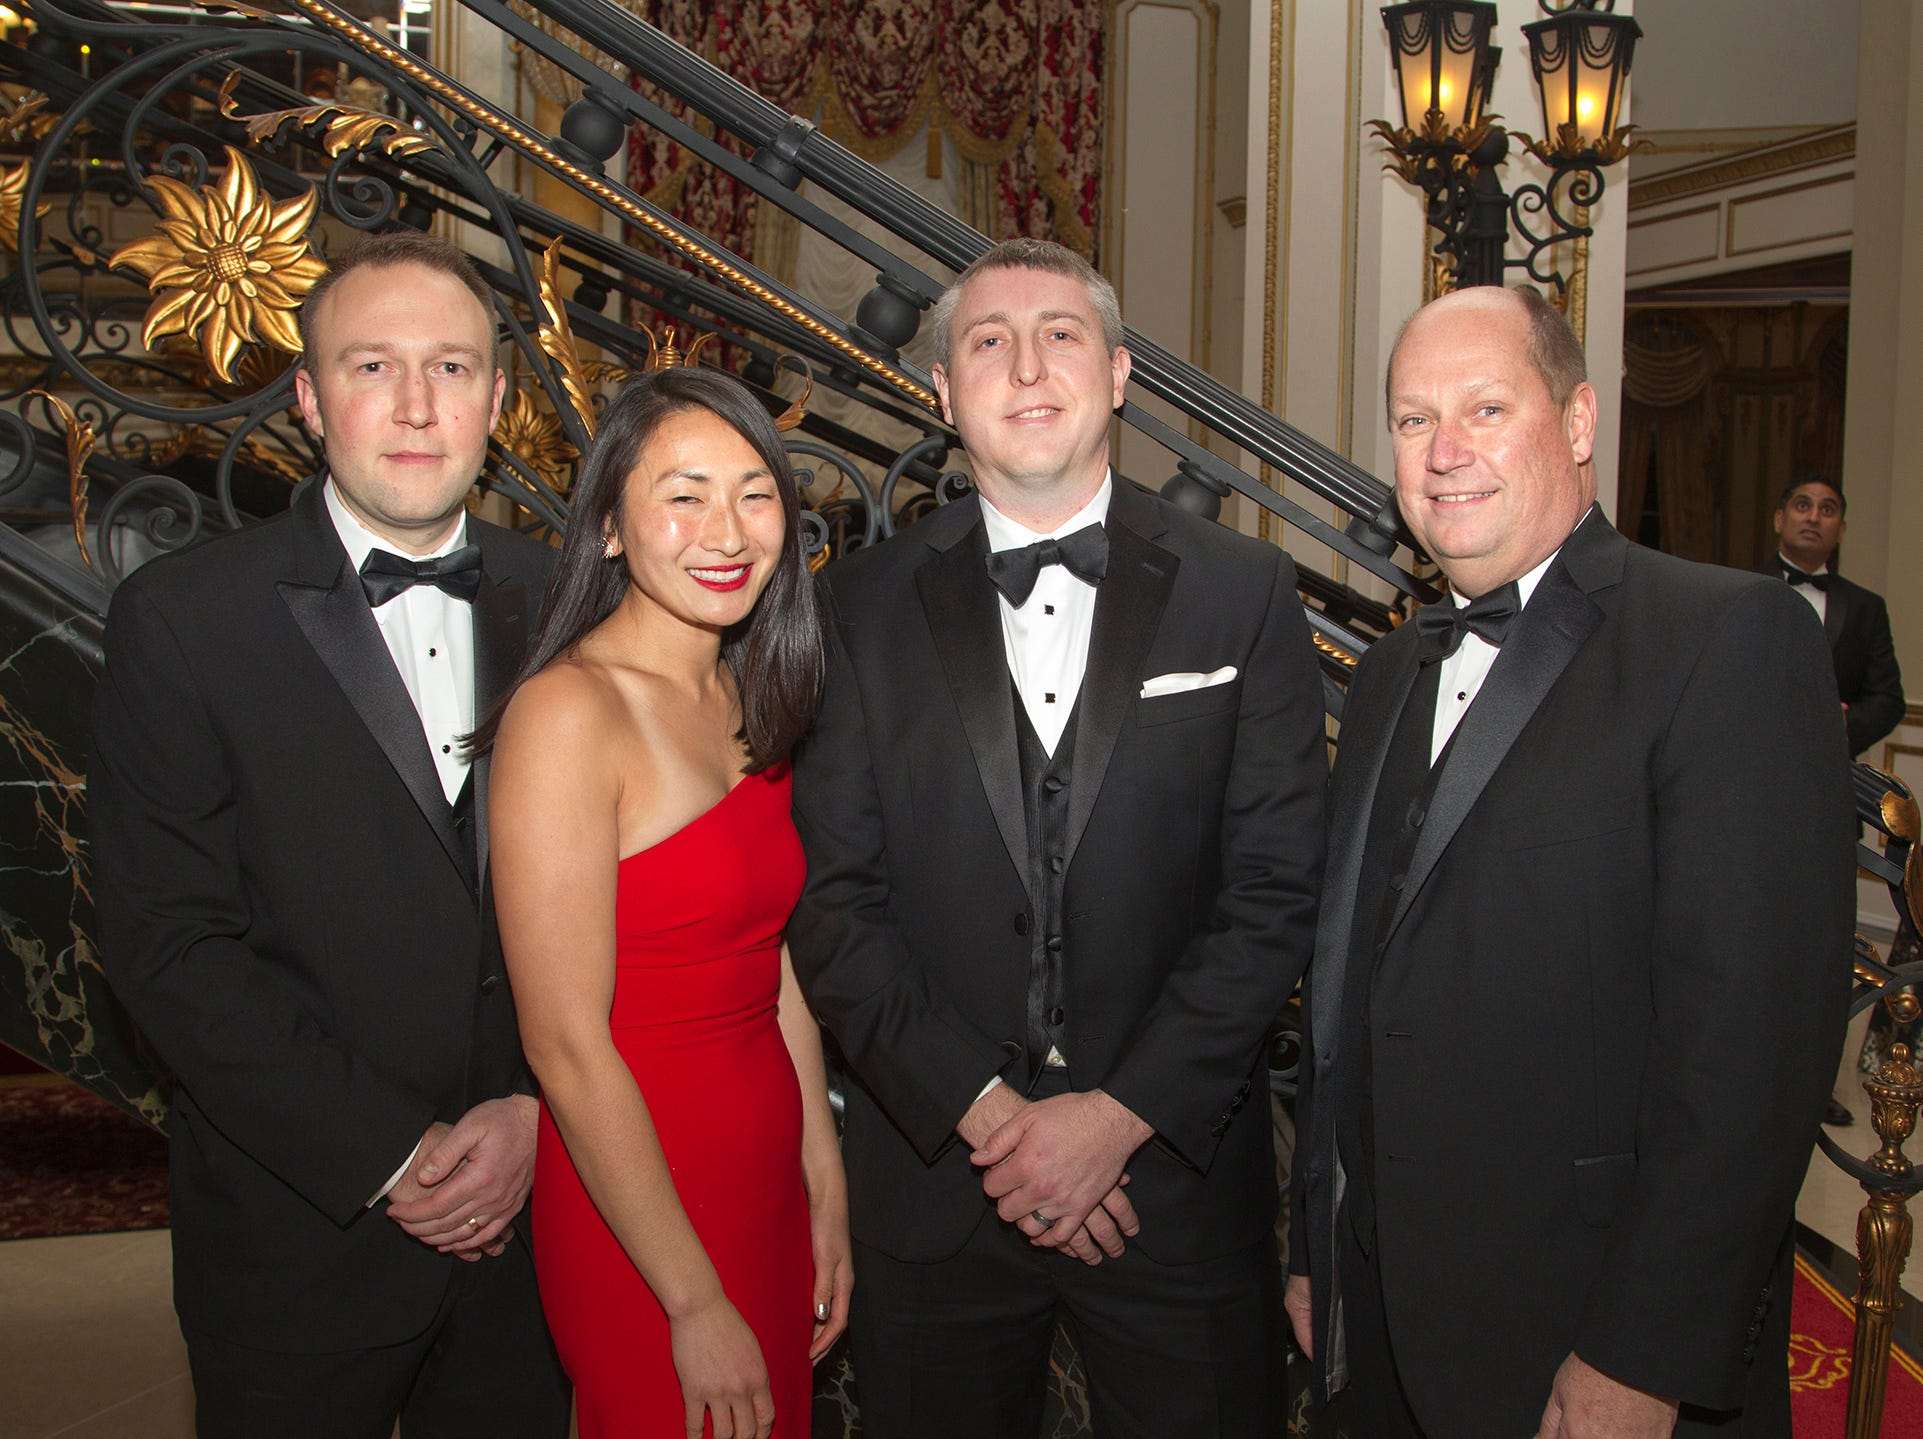 Jeremy Powell, Jessica Miller, Nick Votaw, Jamie Newton. The 72nd Annual Valley Ball gala at The Legacy Castle in Pompton Plains. 11/16/2018